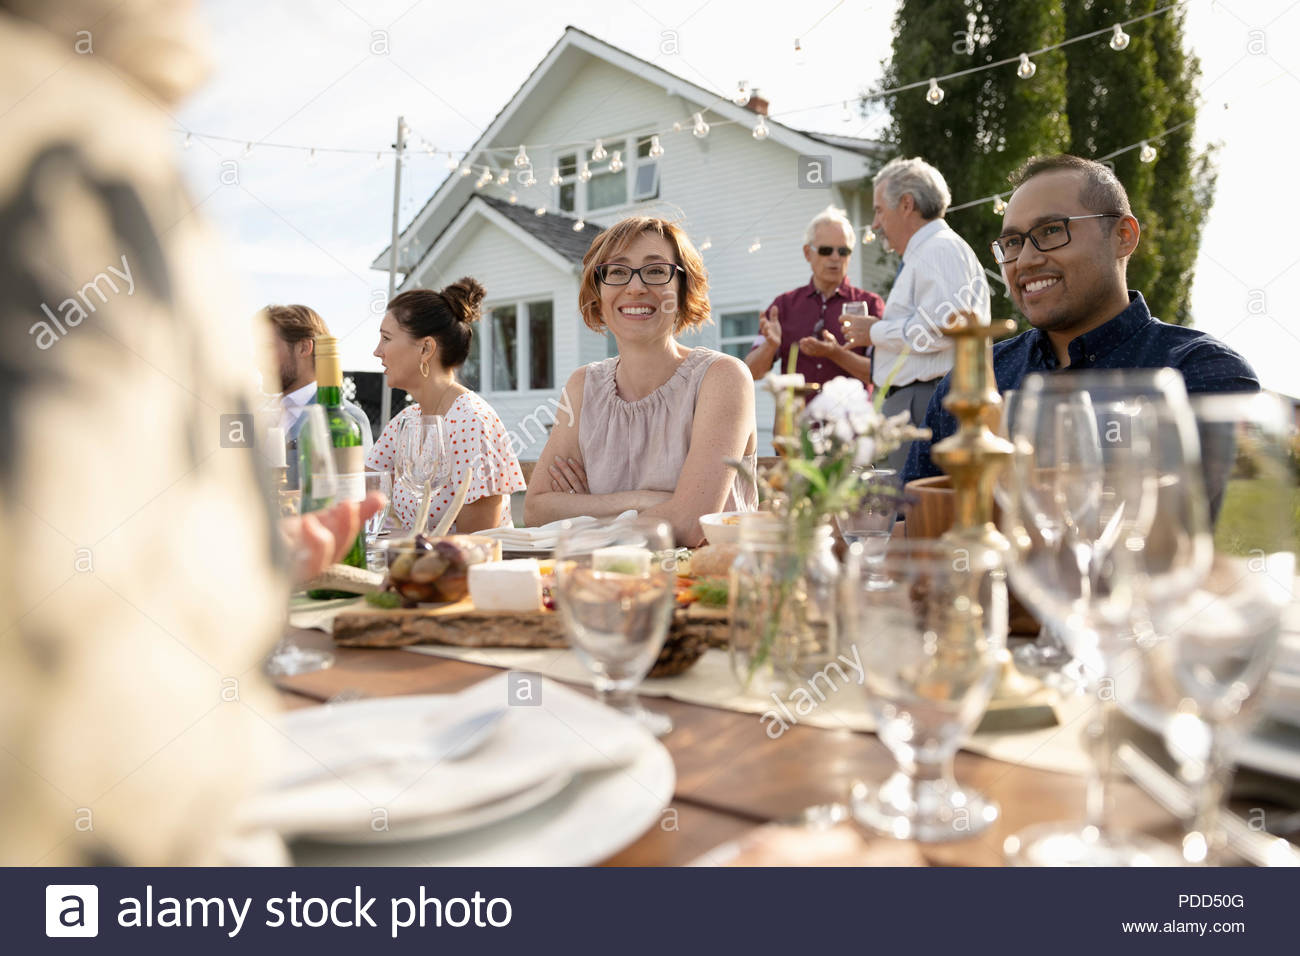 Friends enjoying wedding reception lunch at rural table - Stock Image